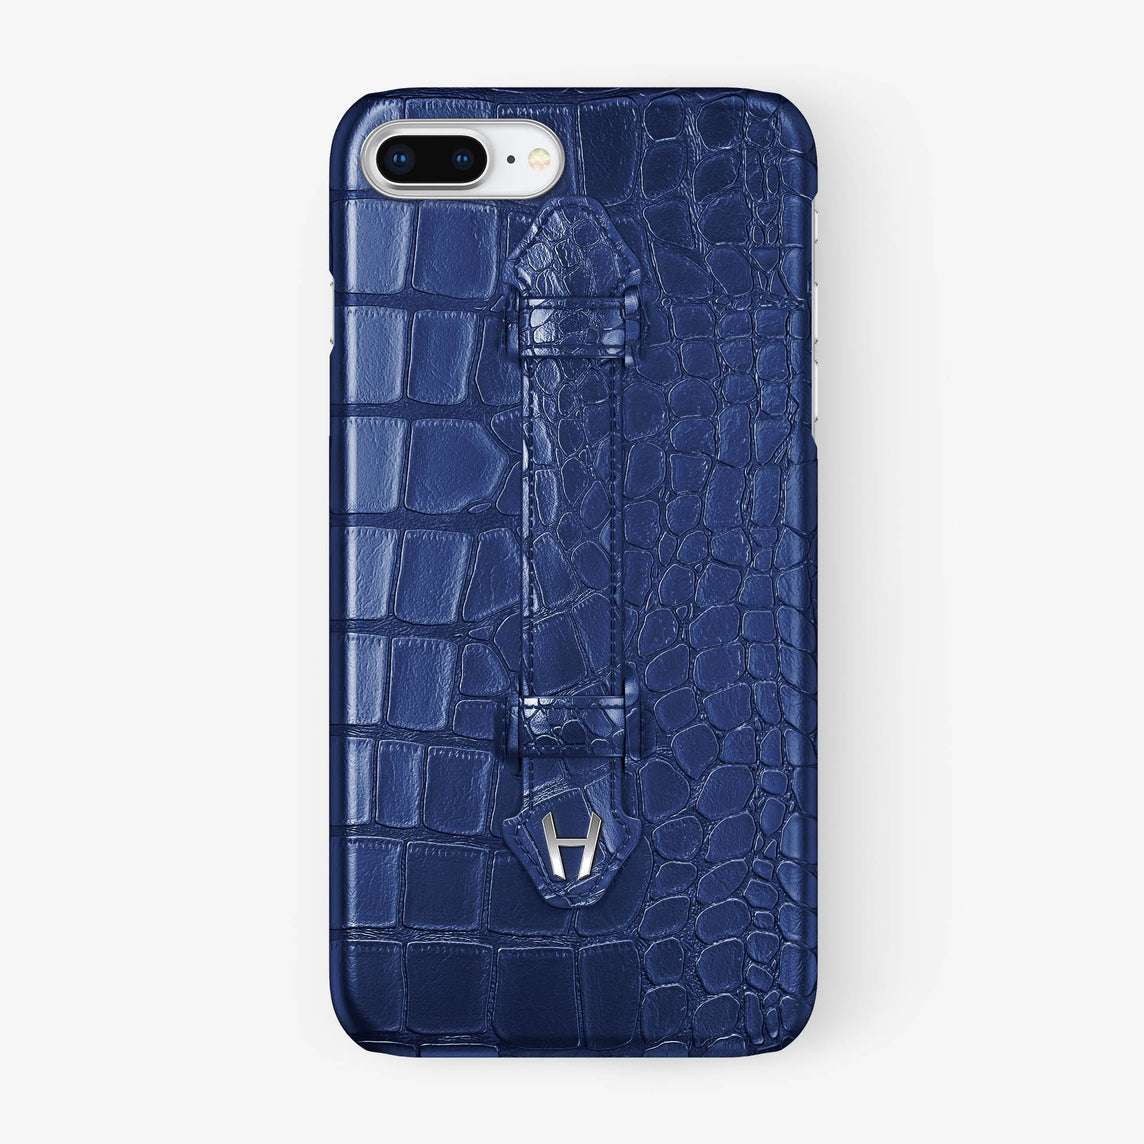 Alligator Finger Case iPhone 7/8 Plus | Navy Blue - Stainless Steel